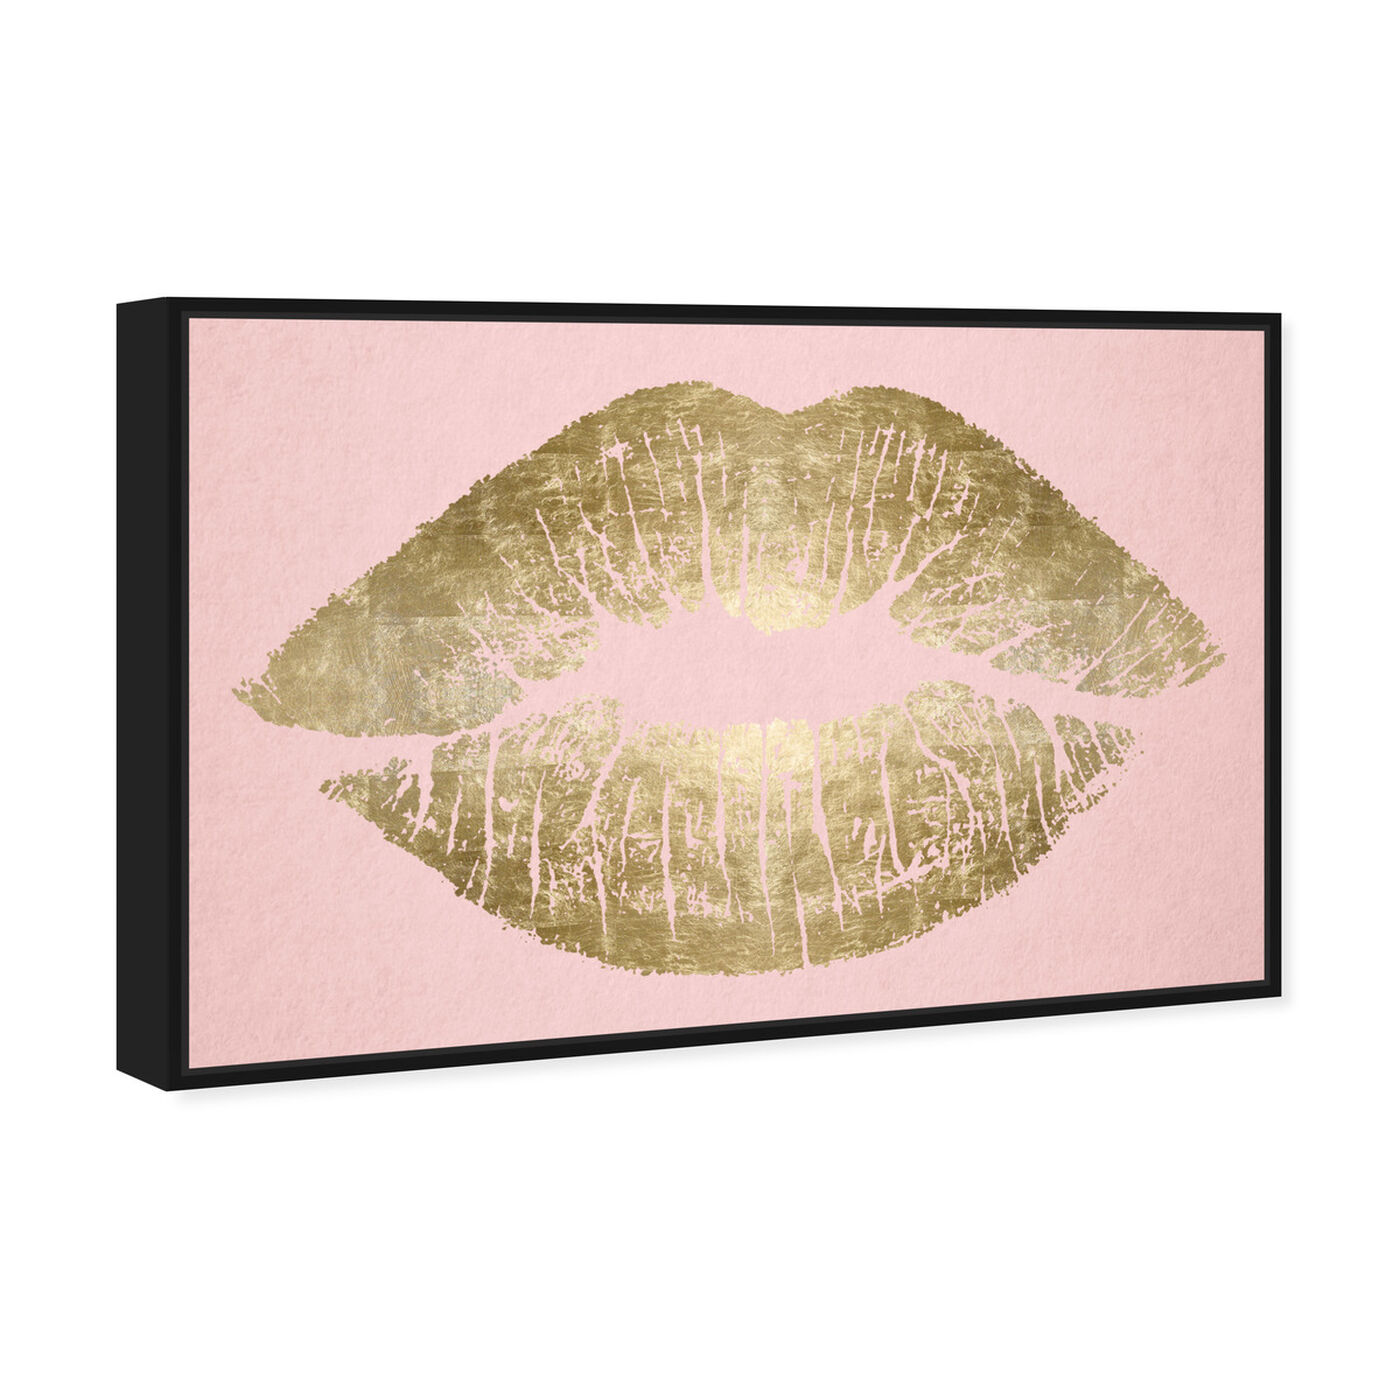 Angled view of Solid Kiss Blush and Gold featuring fashion and glam and lips art.